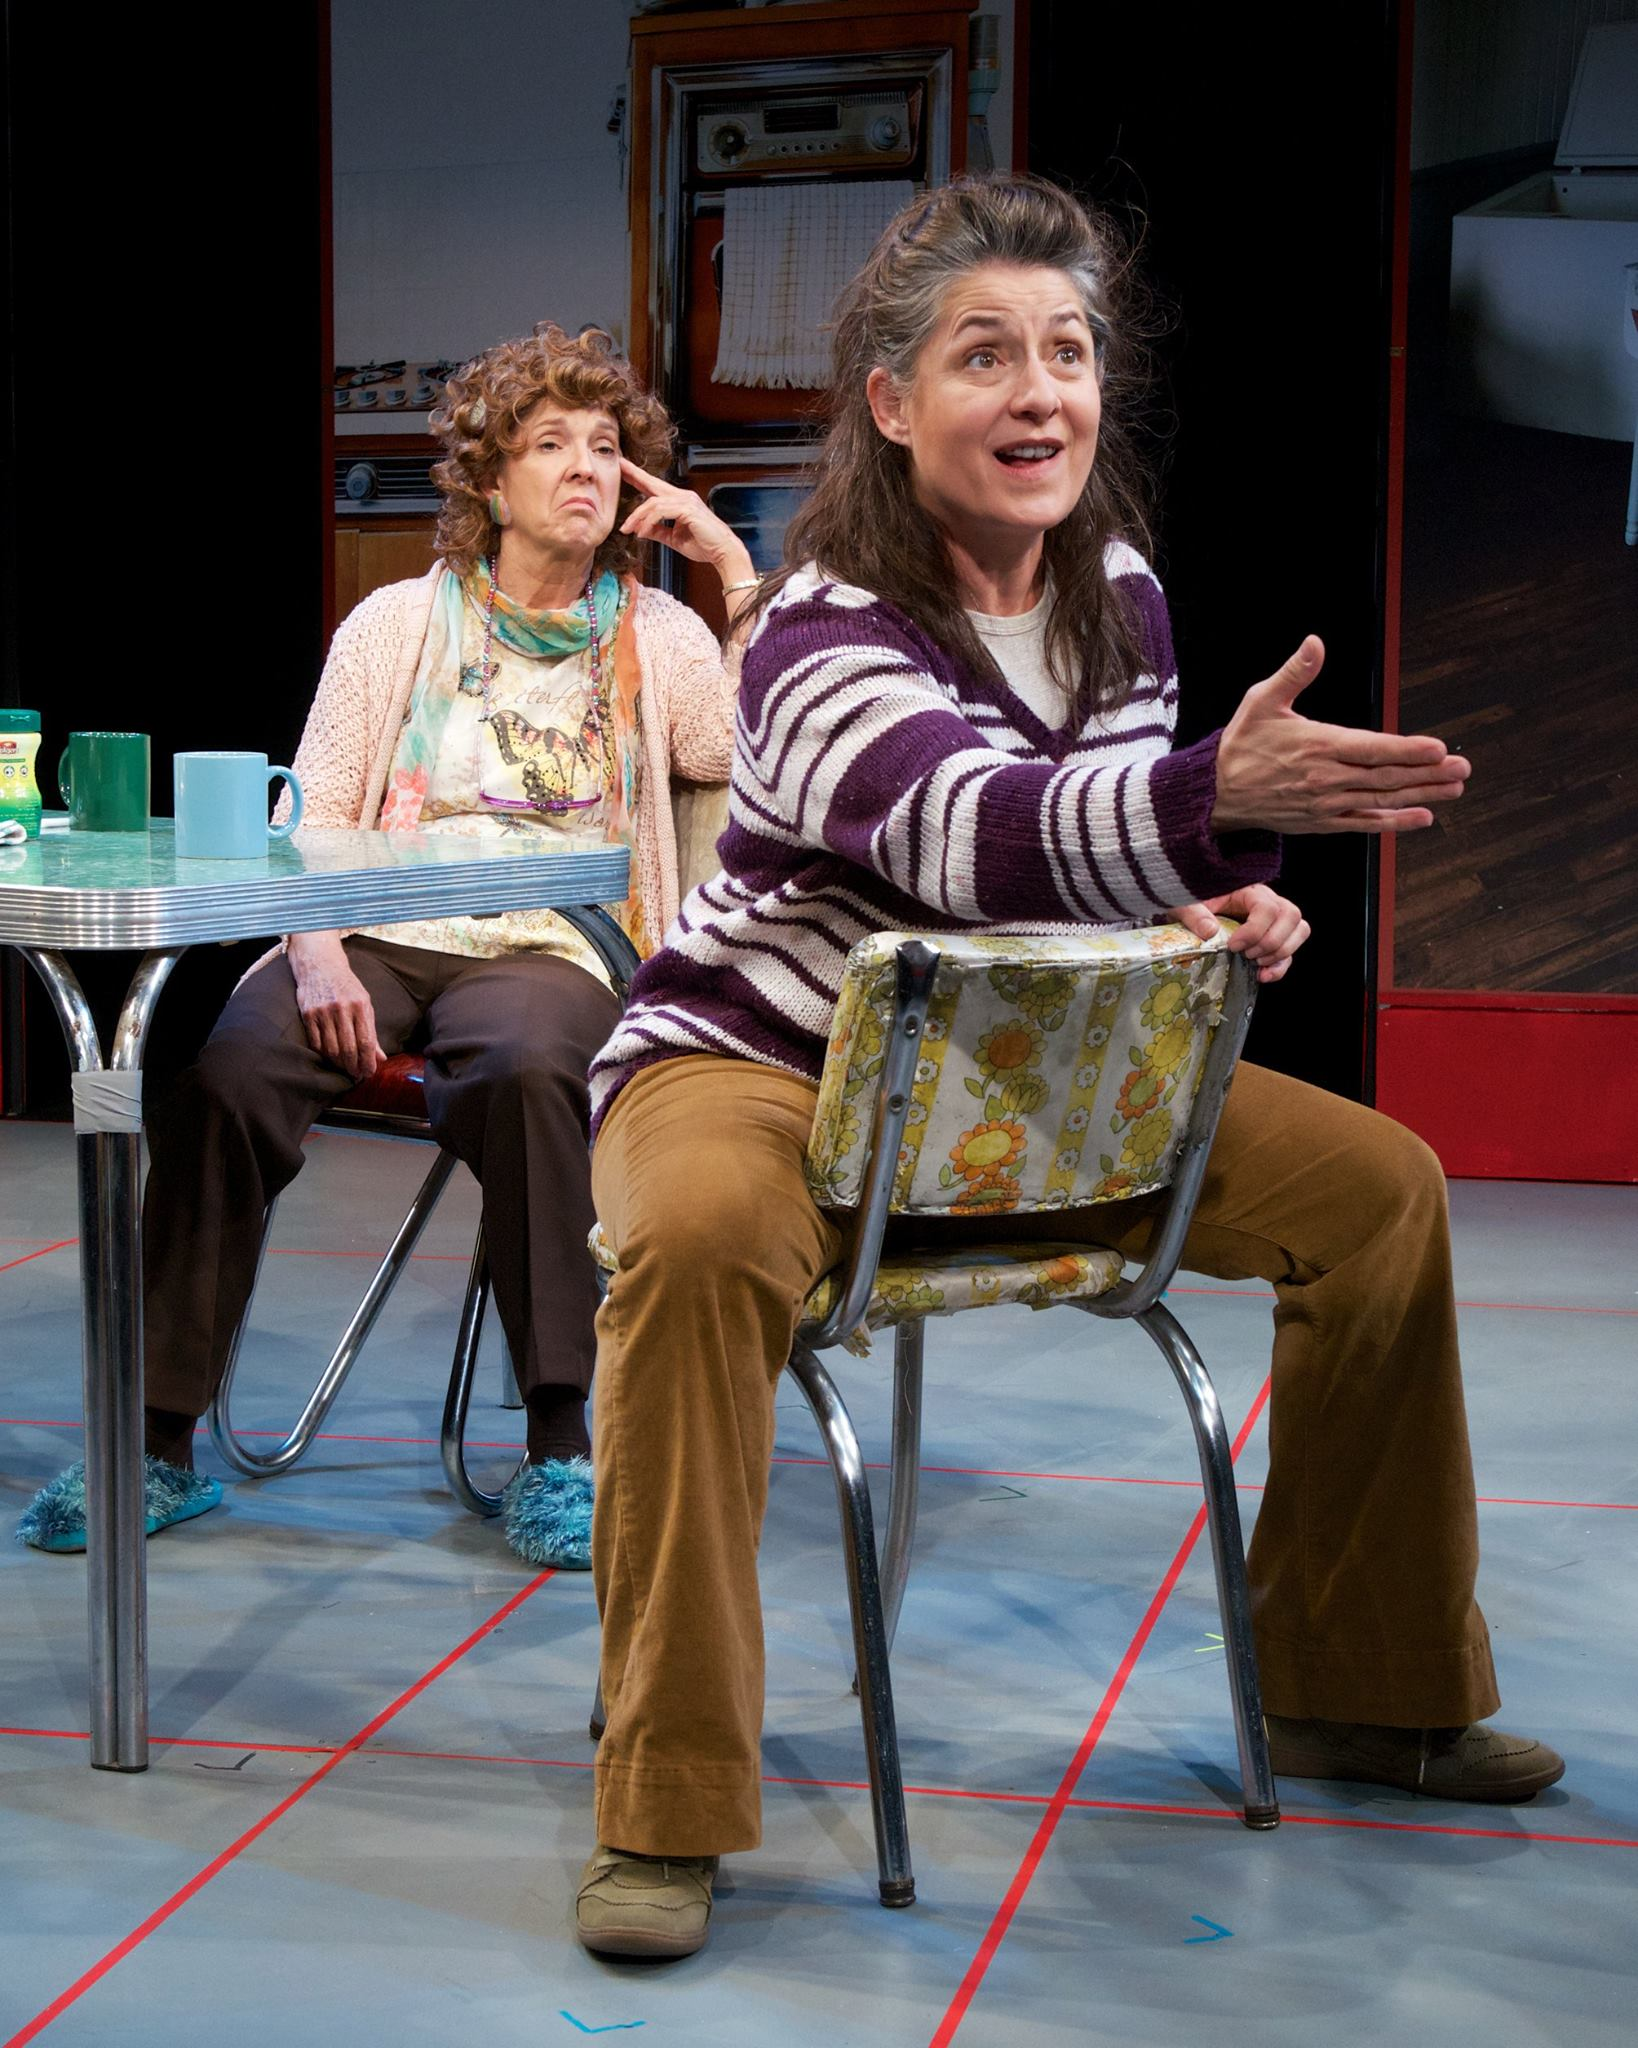 """Cathy Dresbach and Maria Amorocho in """"Good People"""" at Actors Theatre of Phoenix, May 2014 (Photo by John Groseclose)"""